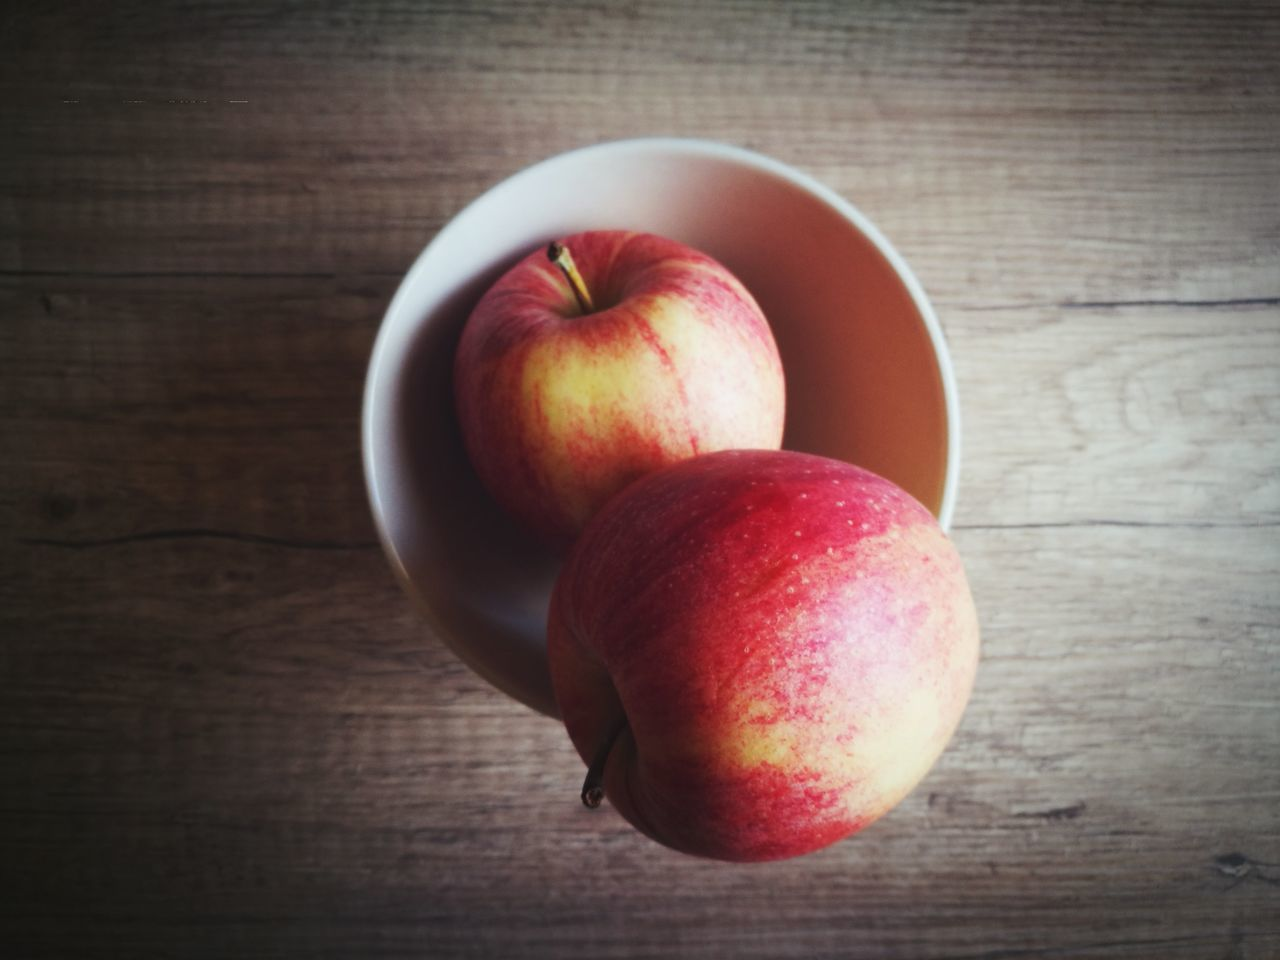 Fruit Healthy Eating Freshness Apple - Fruit Apple Apples Food And Drink Food Table Wood - Material Red Close-up Vegan Vegetarian Food Healthy Lifestyle Healthy Food Fresh HuaweiP9 Minimalism Still Life Huaweiphotography Sweet Food An Apple A Day Gala Apple